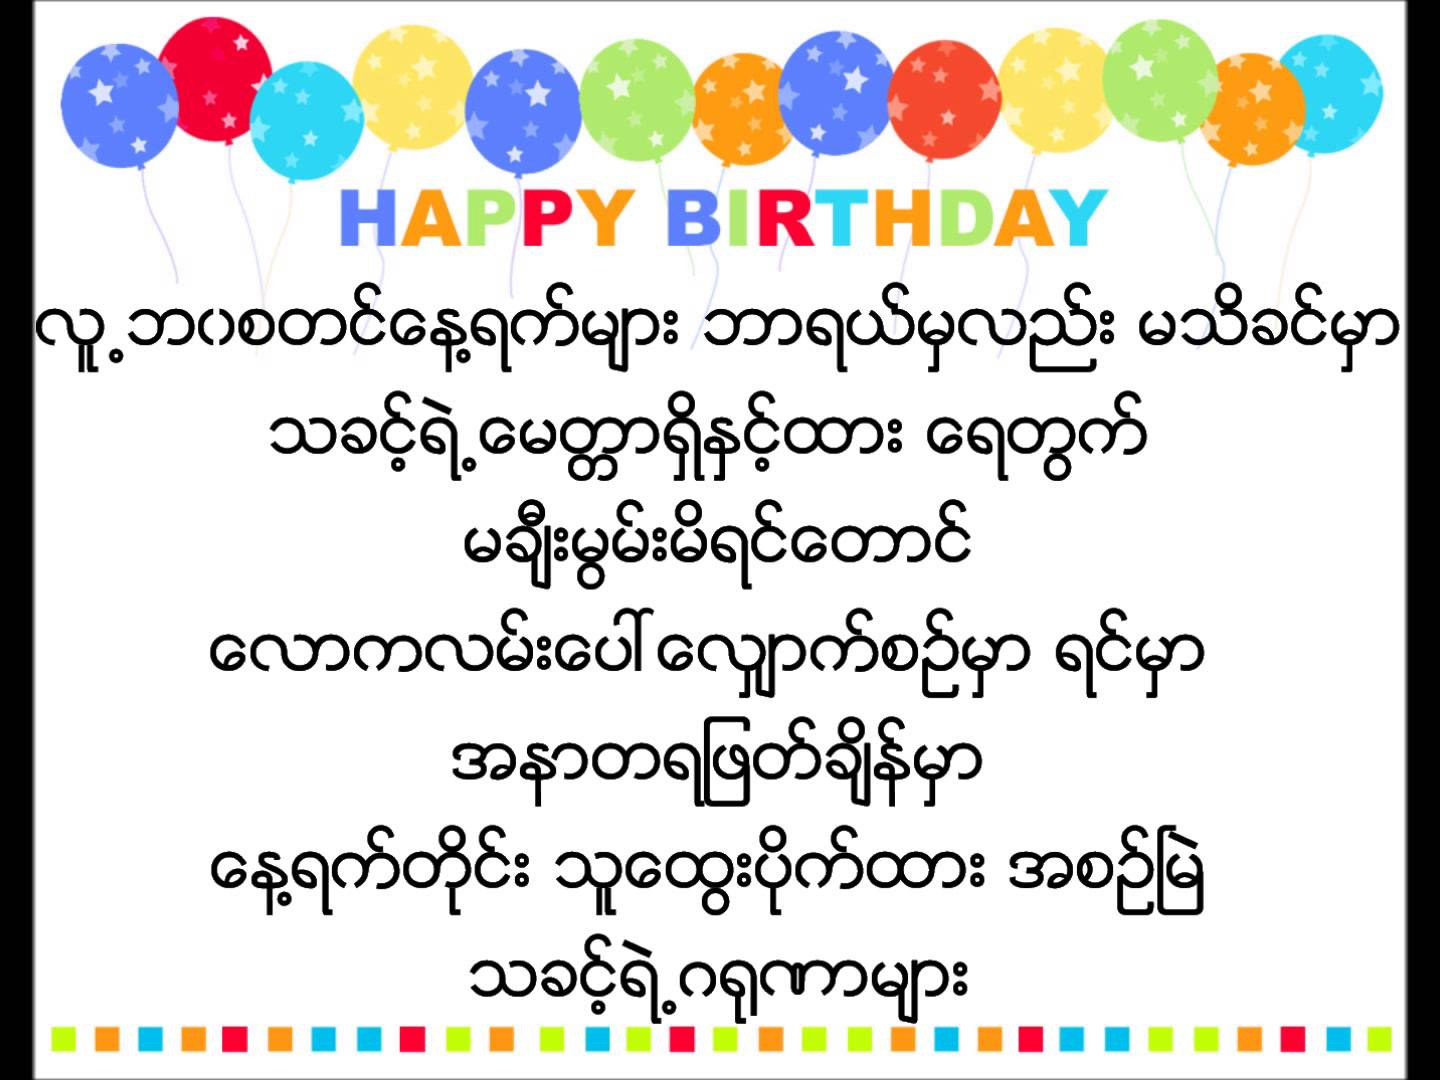 myanmar birthday wish ; maxresdefault